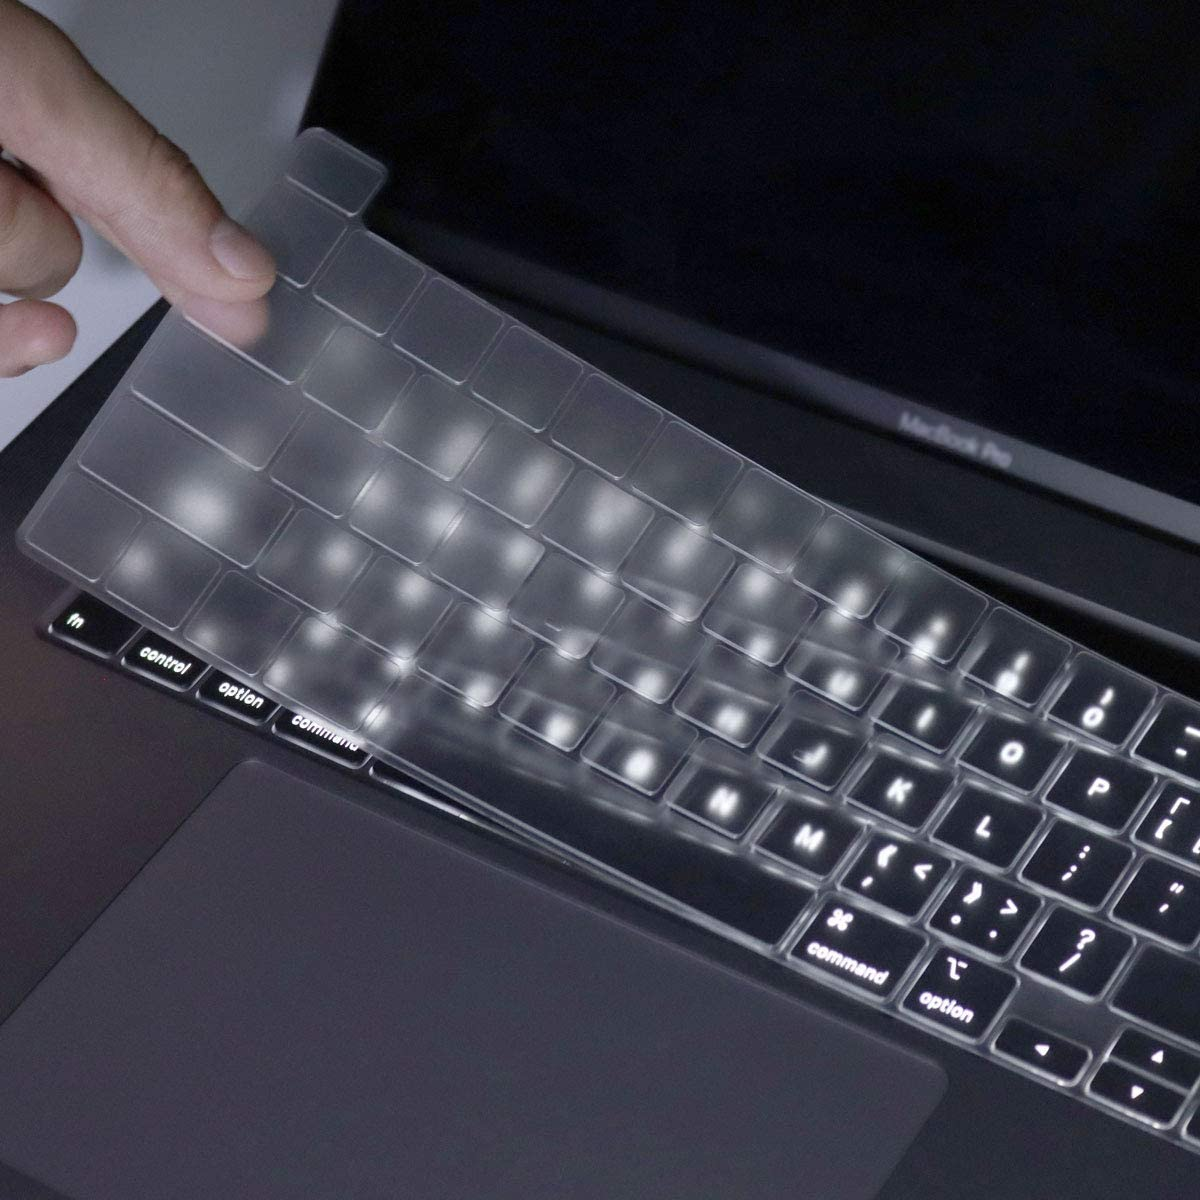 Kuzy New MacBook Pro 13 inch Keyboard Cover 2020 A2289 and MacBook Pro 16 inch Keyboard Cover 2019 A2141 Silicone Key Board Skin Thin Protector for MacBook Pro Keyboard Cover with Touch Bar Black